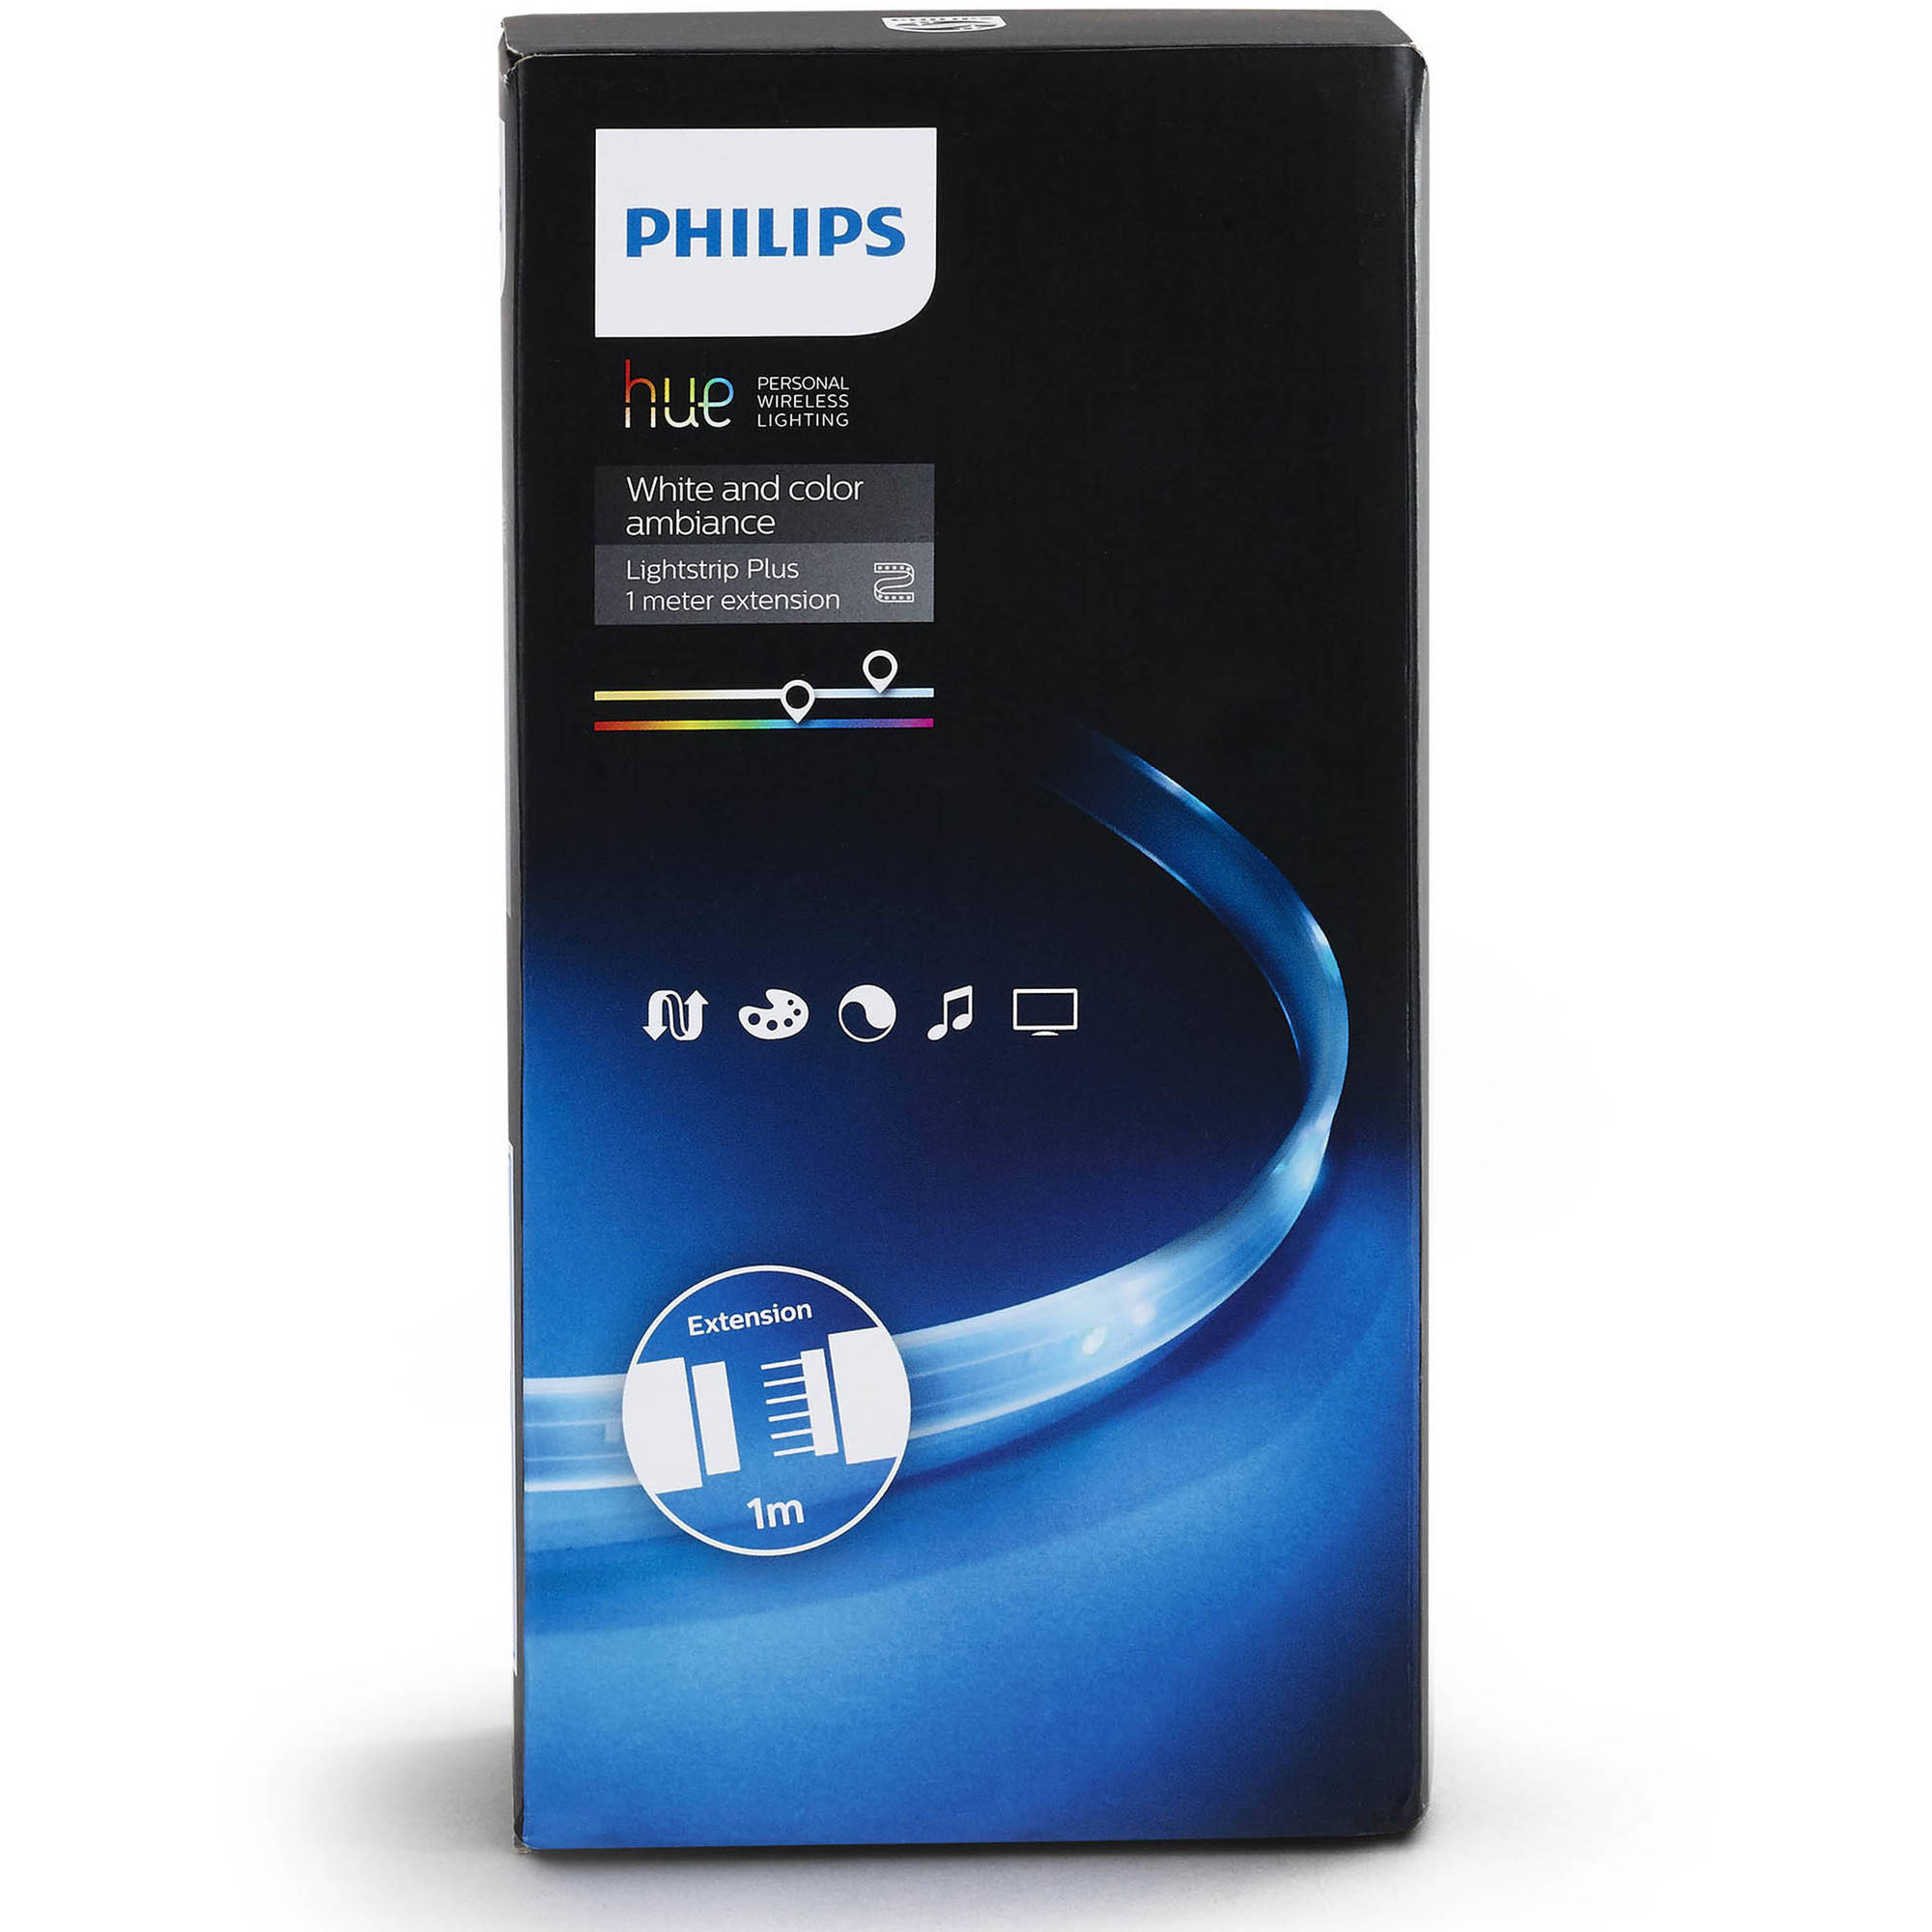 37bb79da212 Philips Hue White and Color Ambiance Smart Lightstrip Extension -  Walmart.com